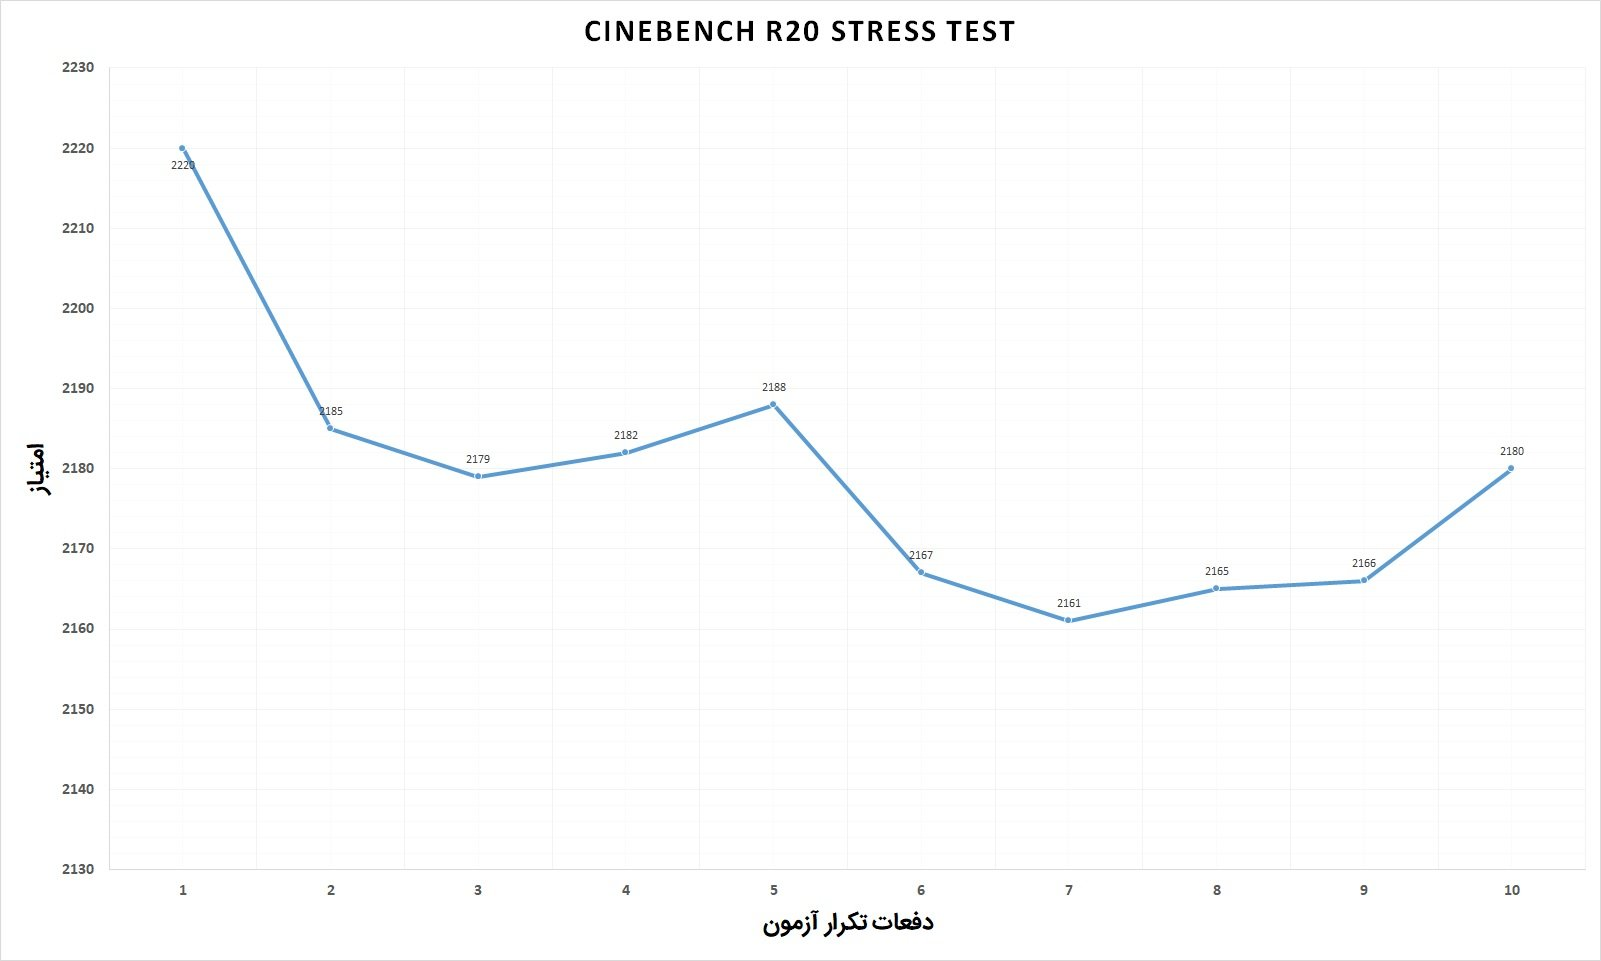 Acer Nitro 7 CineBench Stress Test